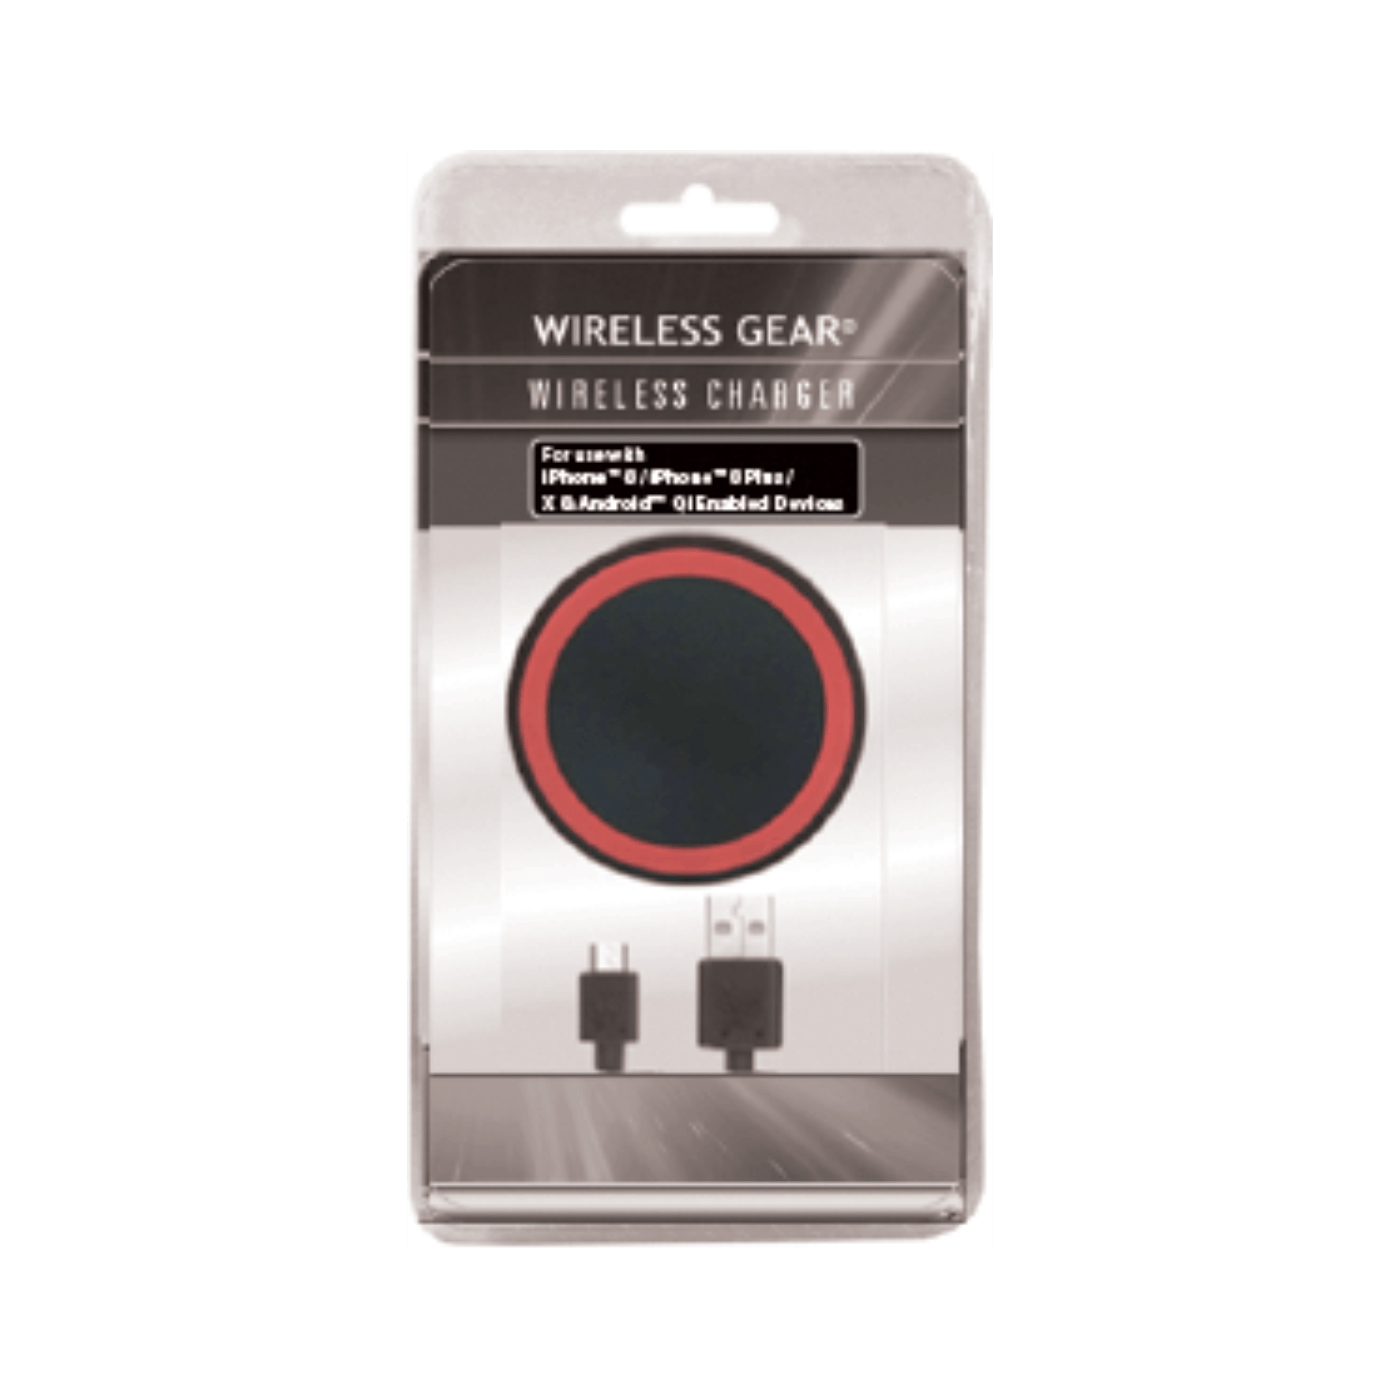 Wireless Gear - wireless desktop charger